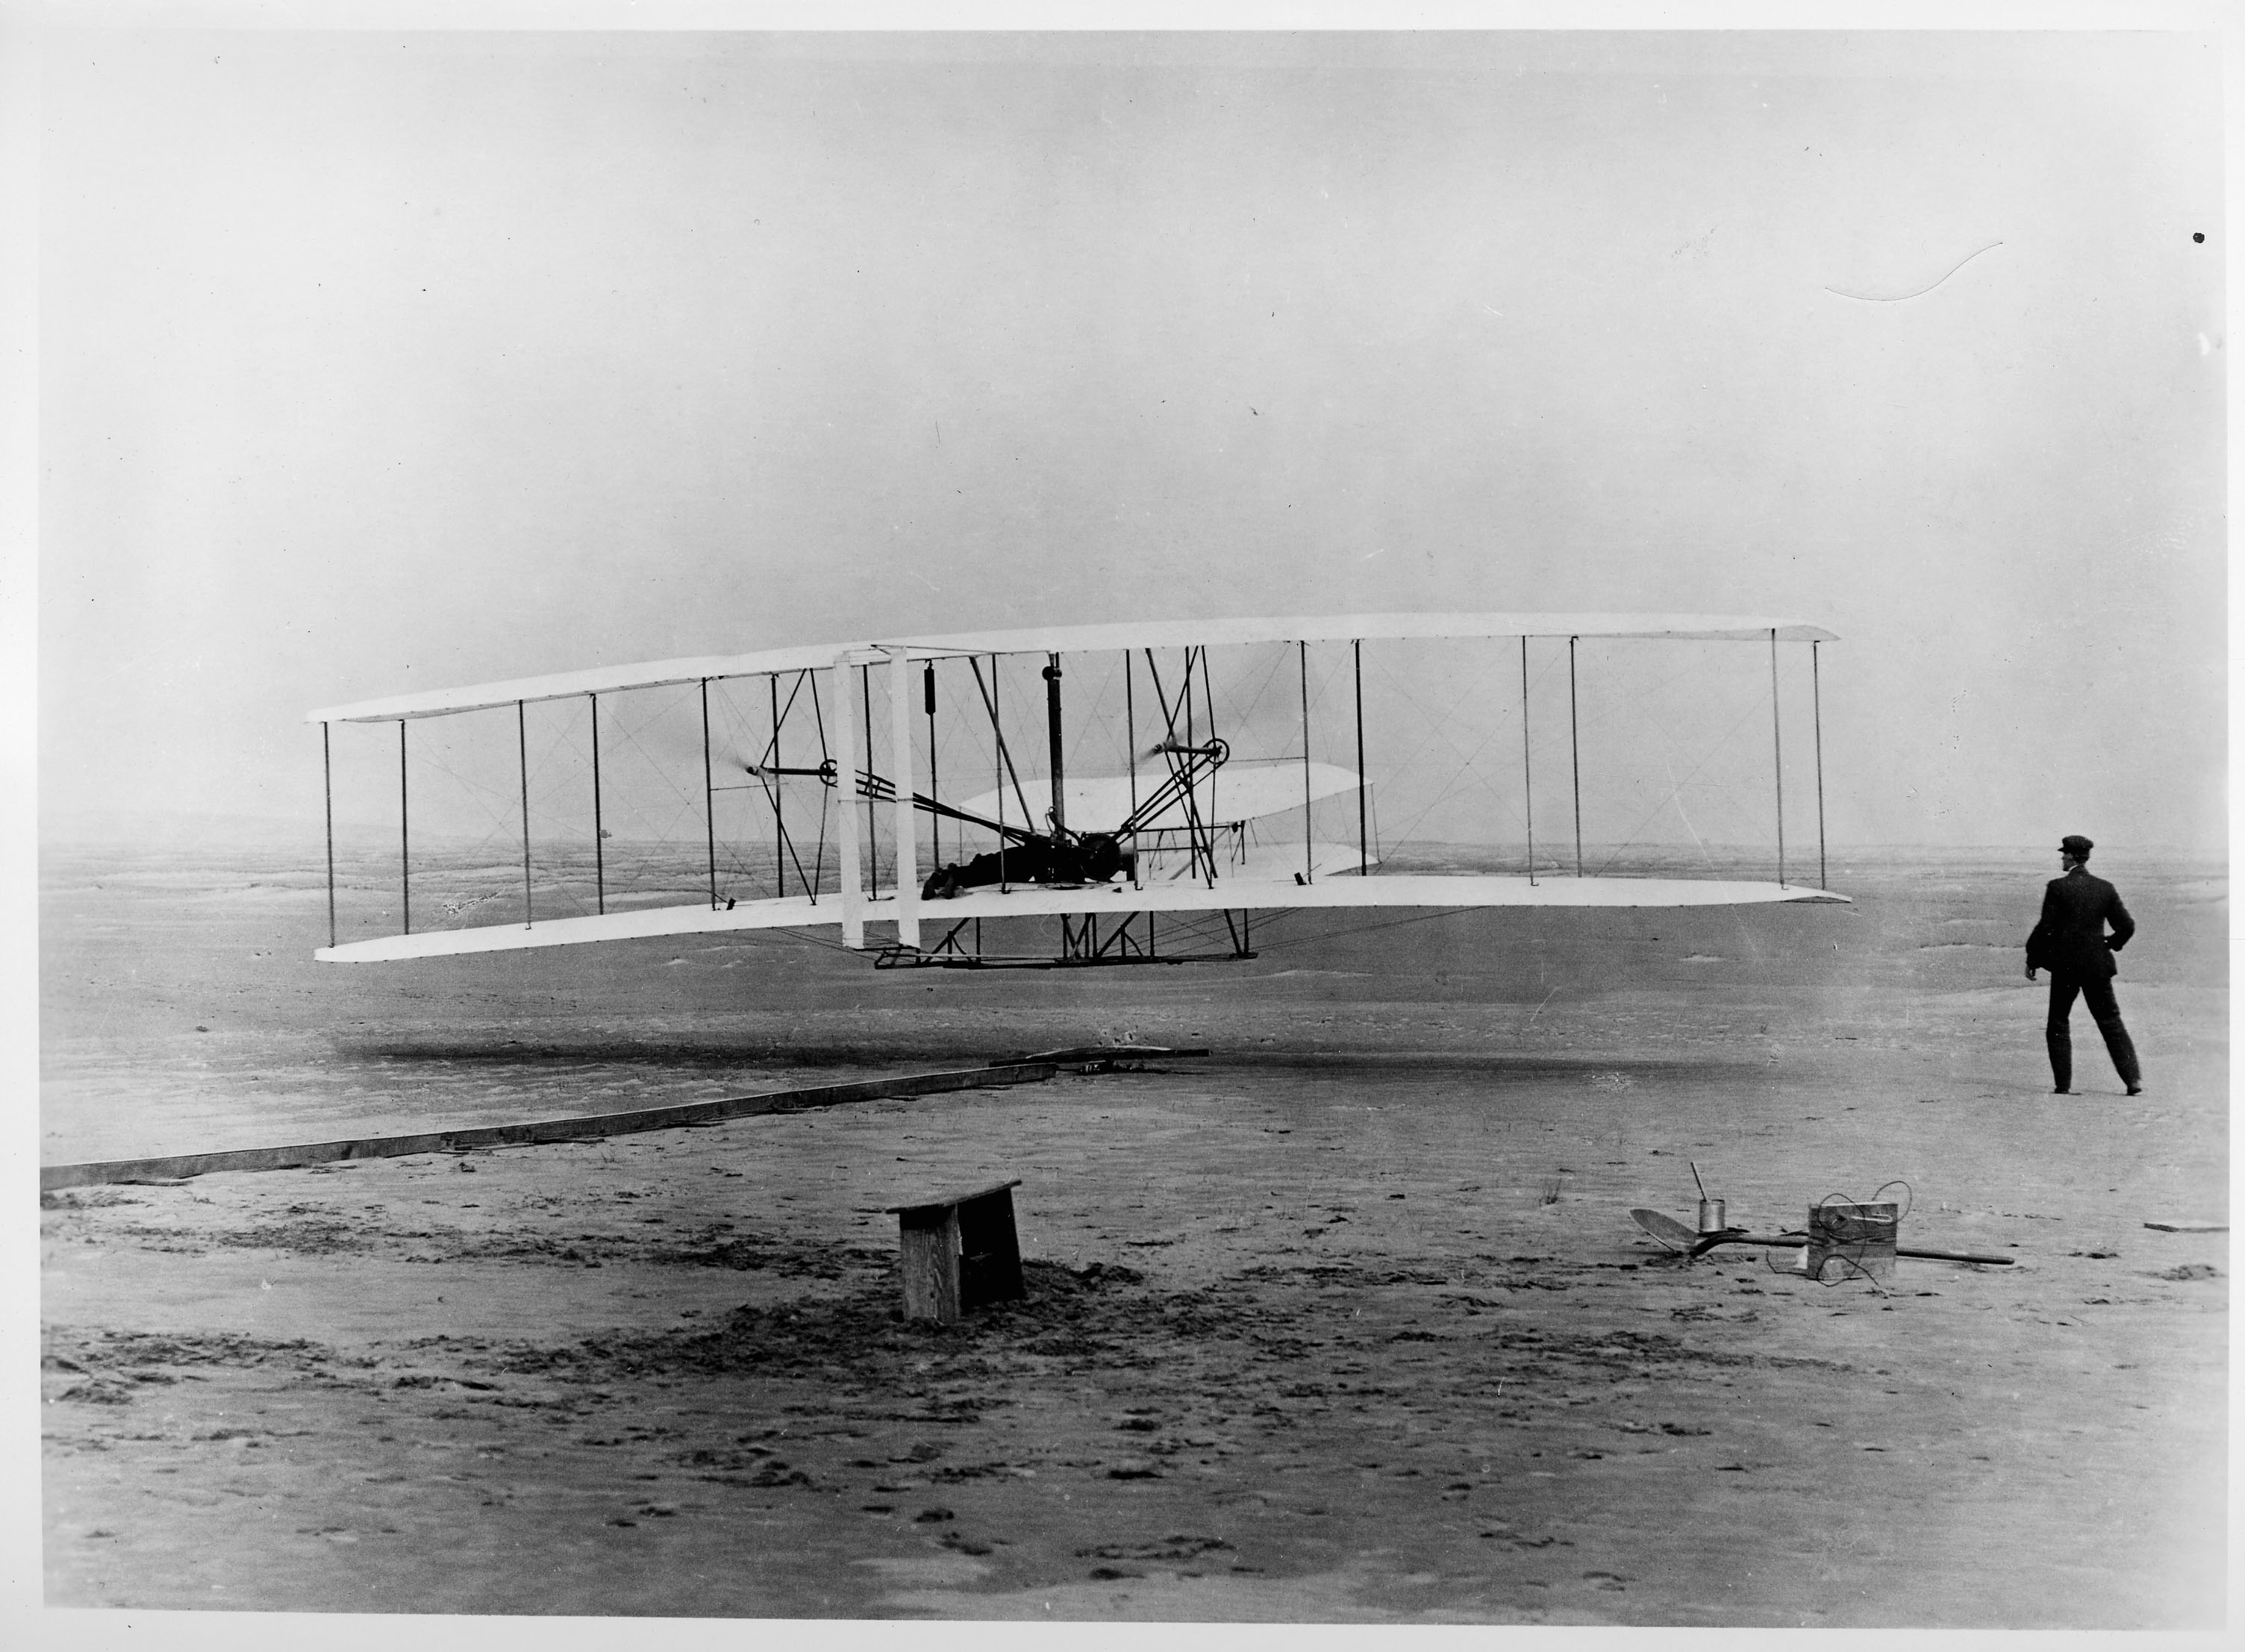 The Wright Brothers First Flight at Kitty Hawk, North Carolina.